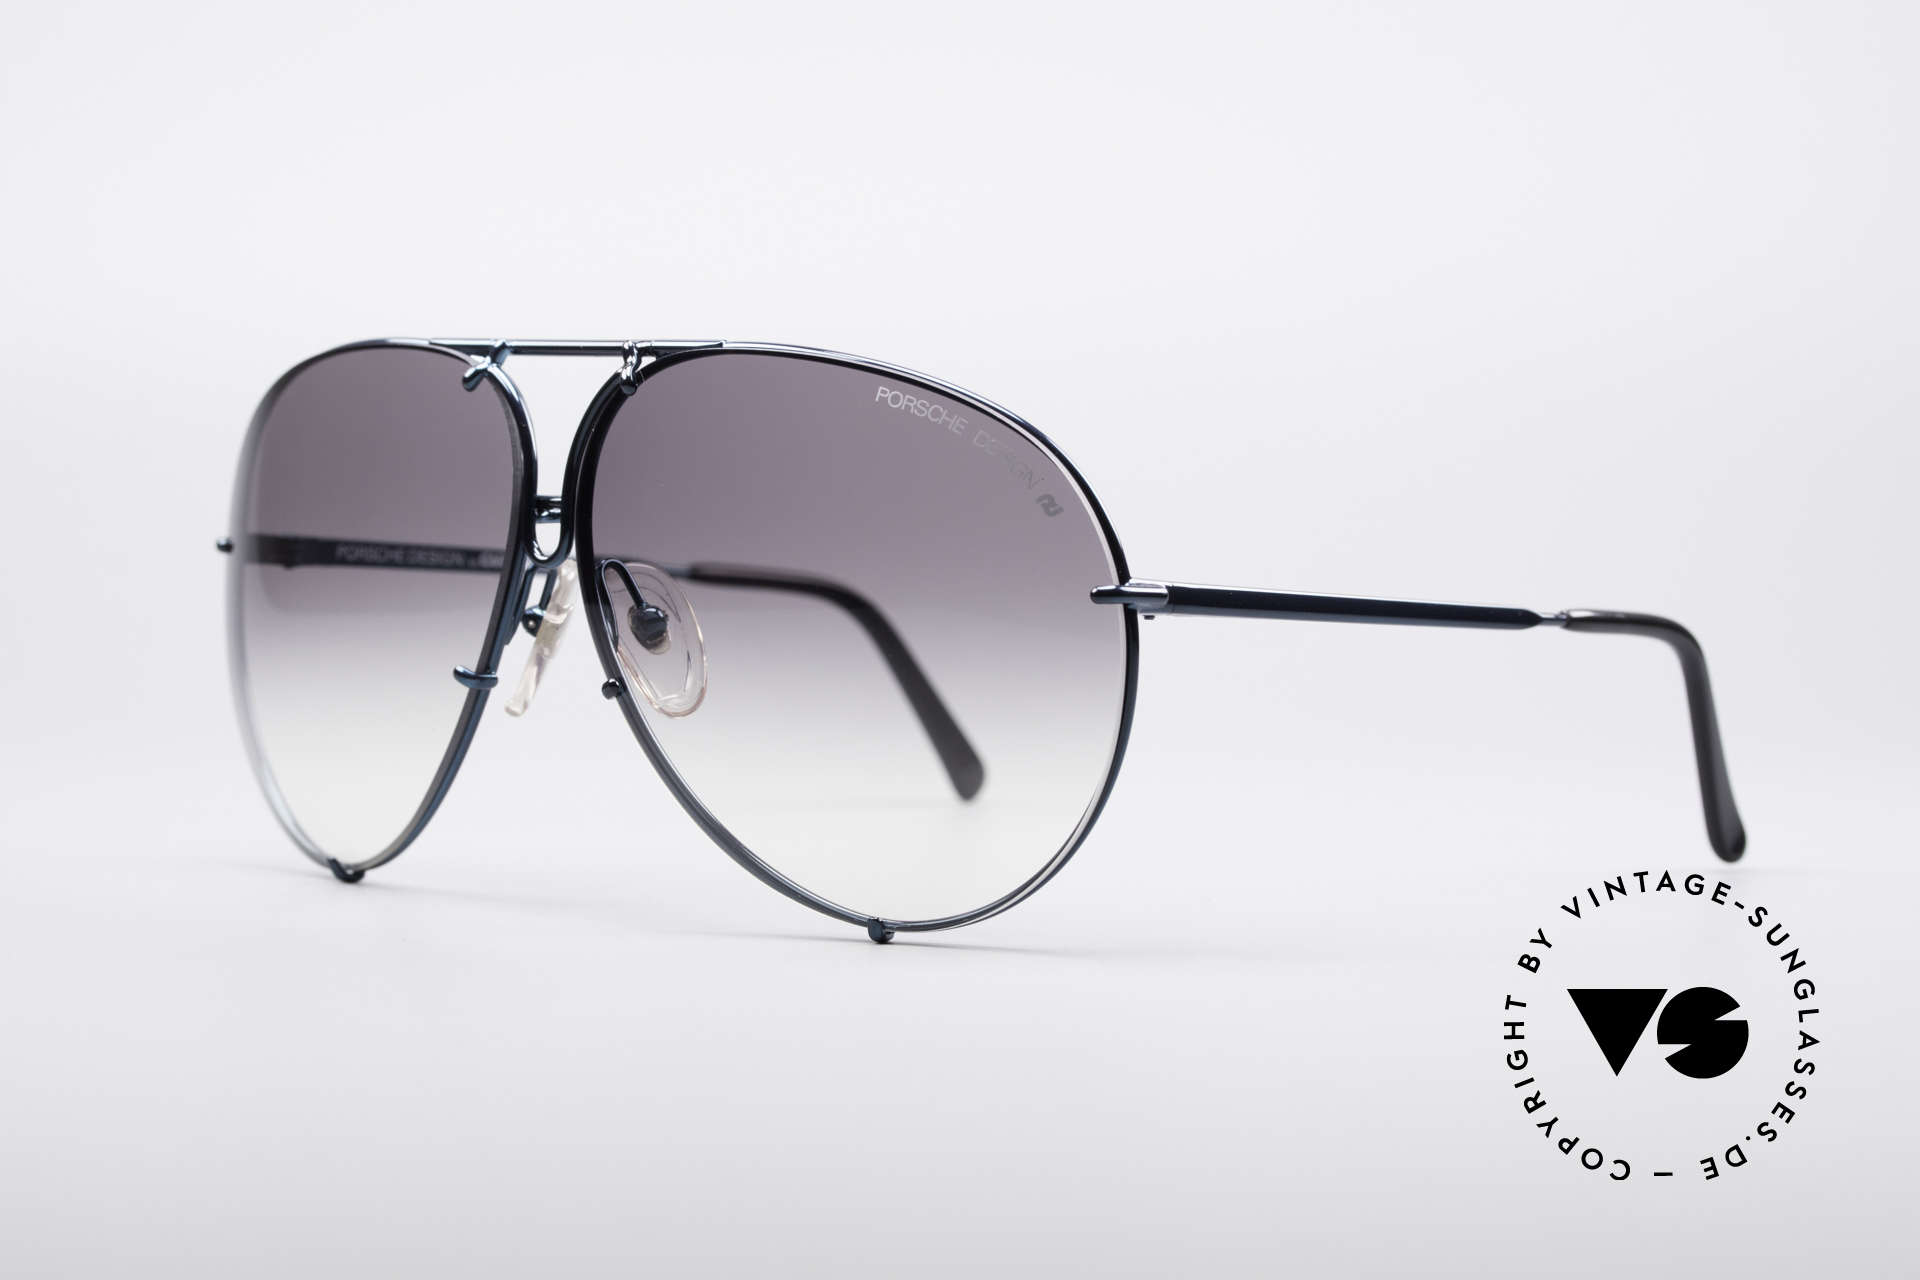 Porsche 5623 80's Aviator Sunglasses, the legend with interchangeable lenses - true vintage, Made for Men and Women